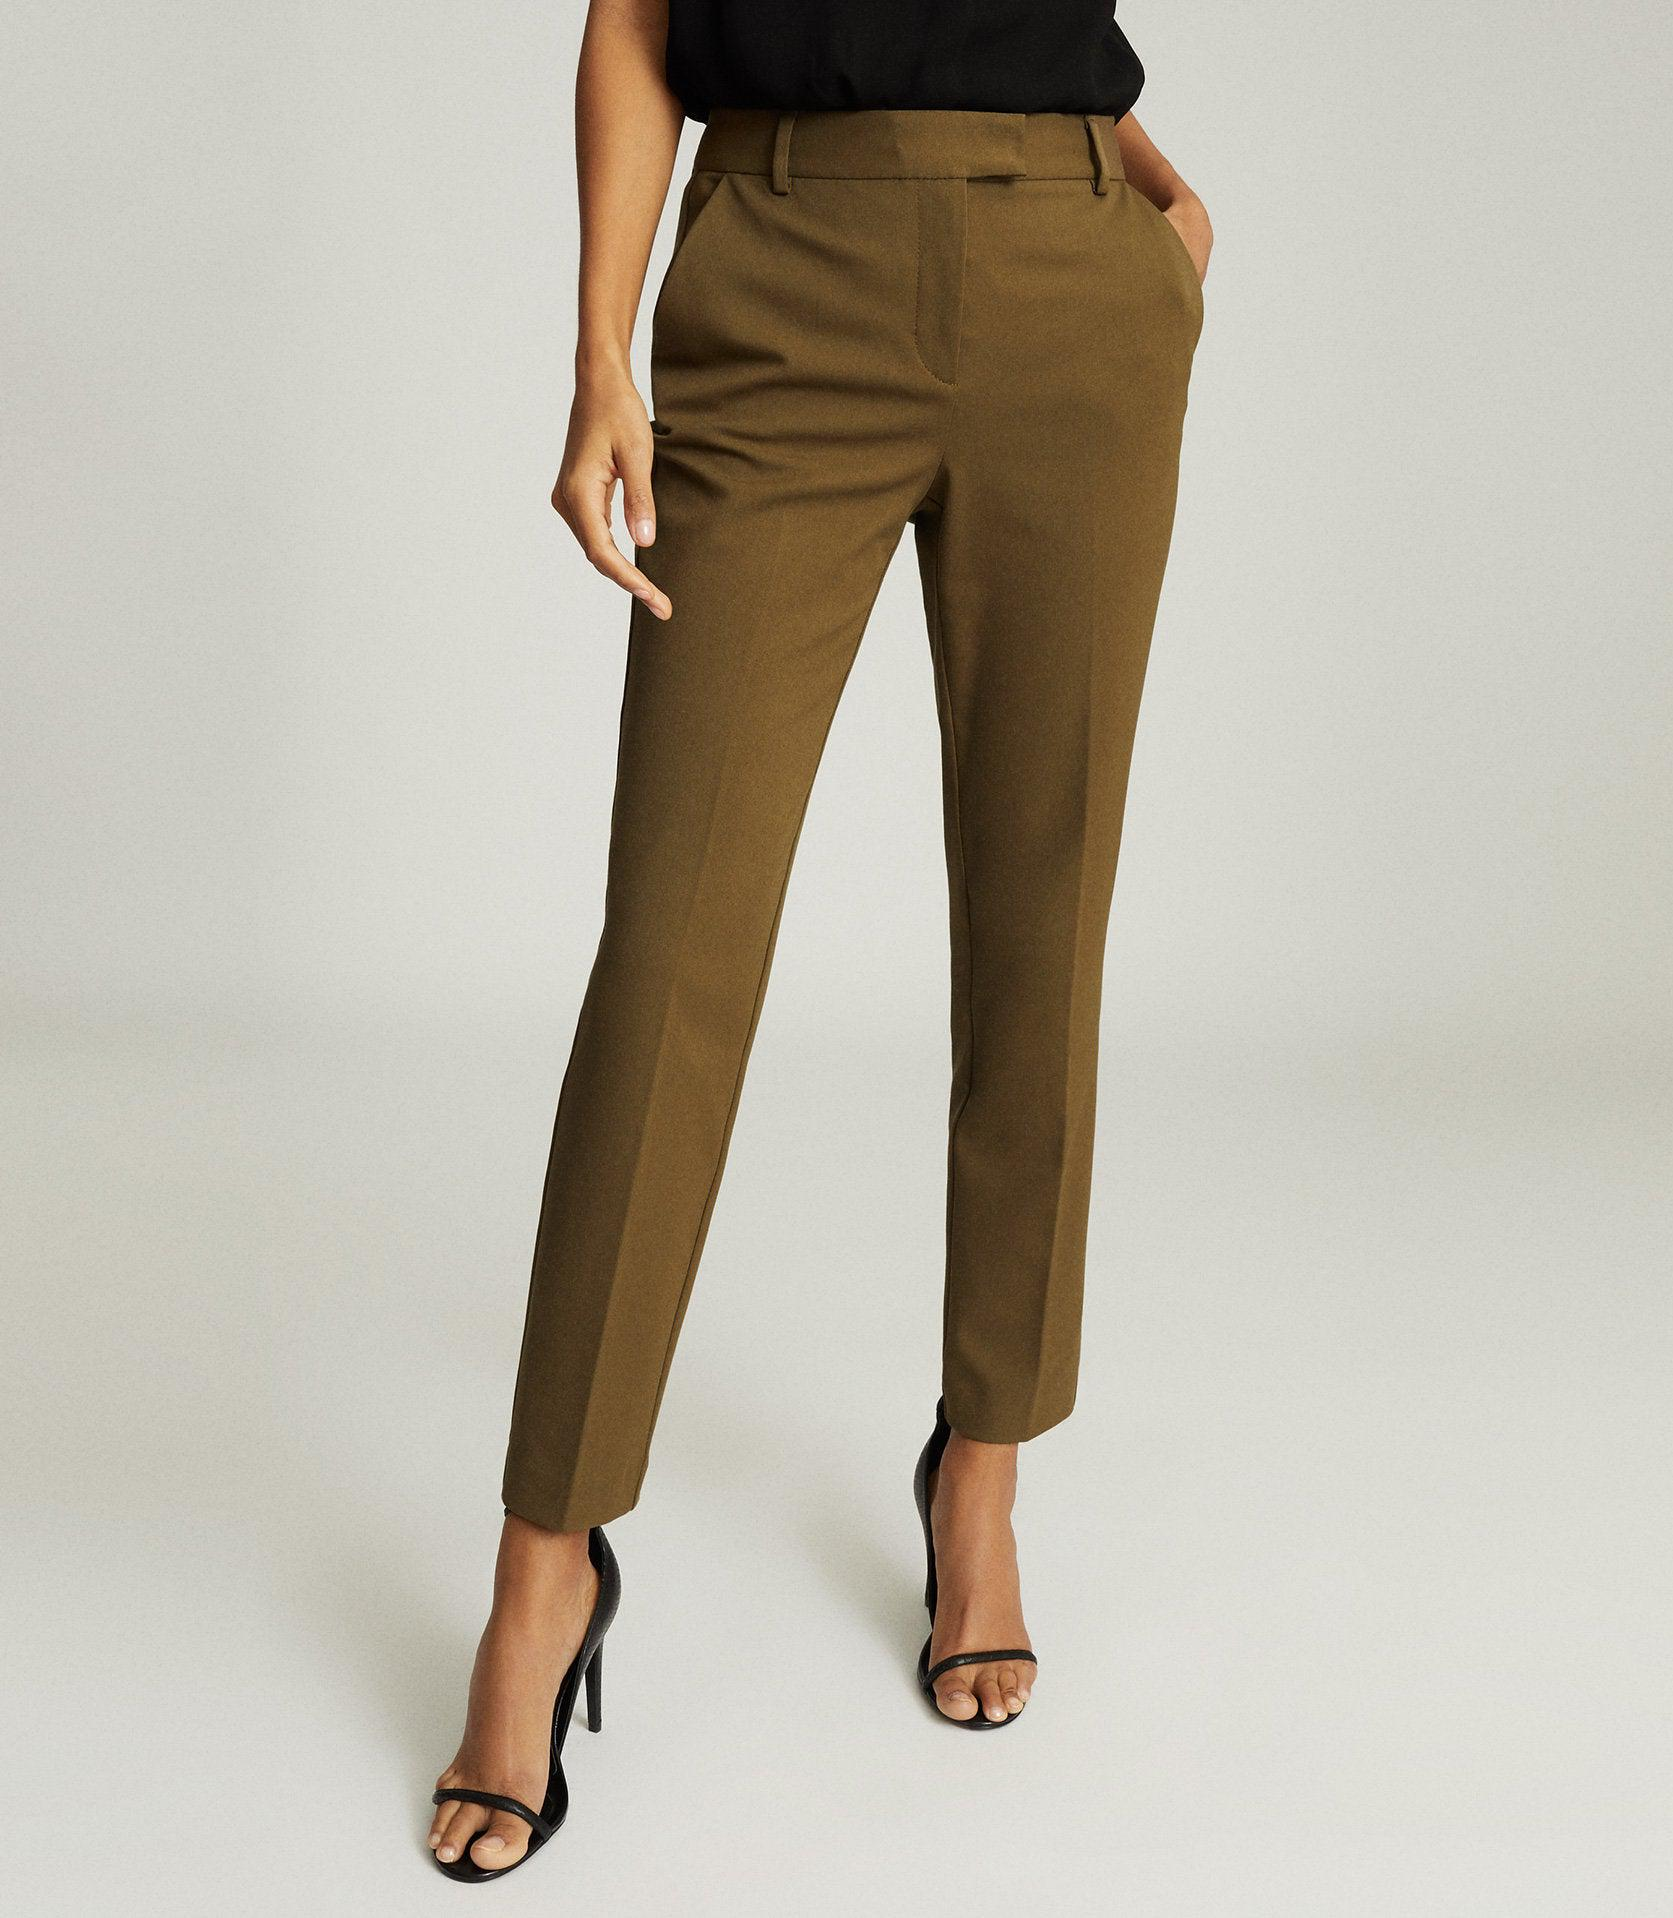 JOANNE - SLIM FIT TAILORED TROUSERS 1